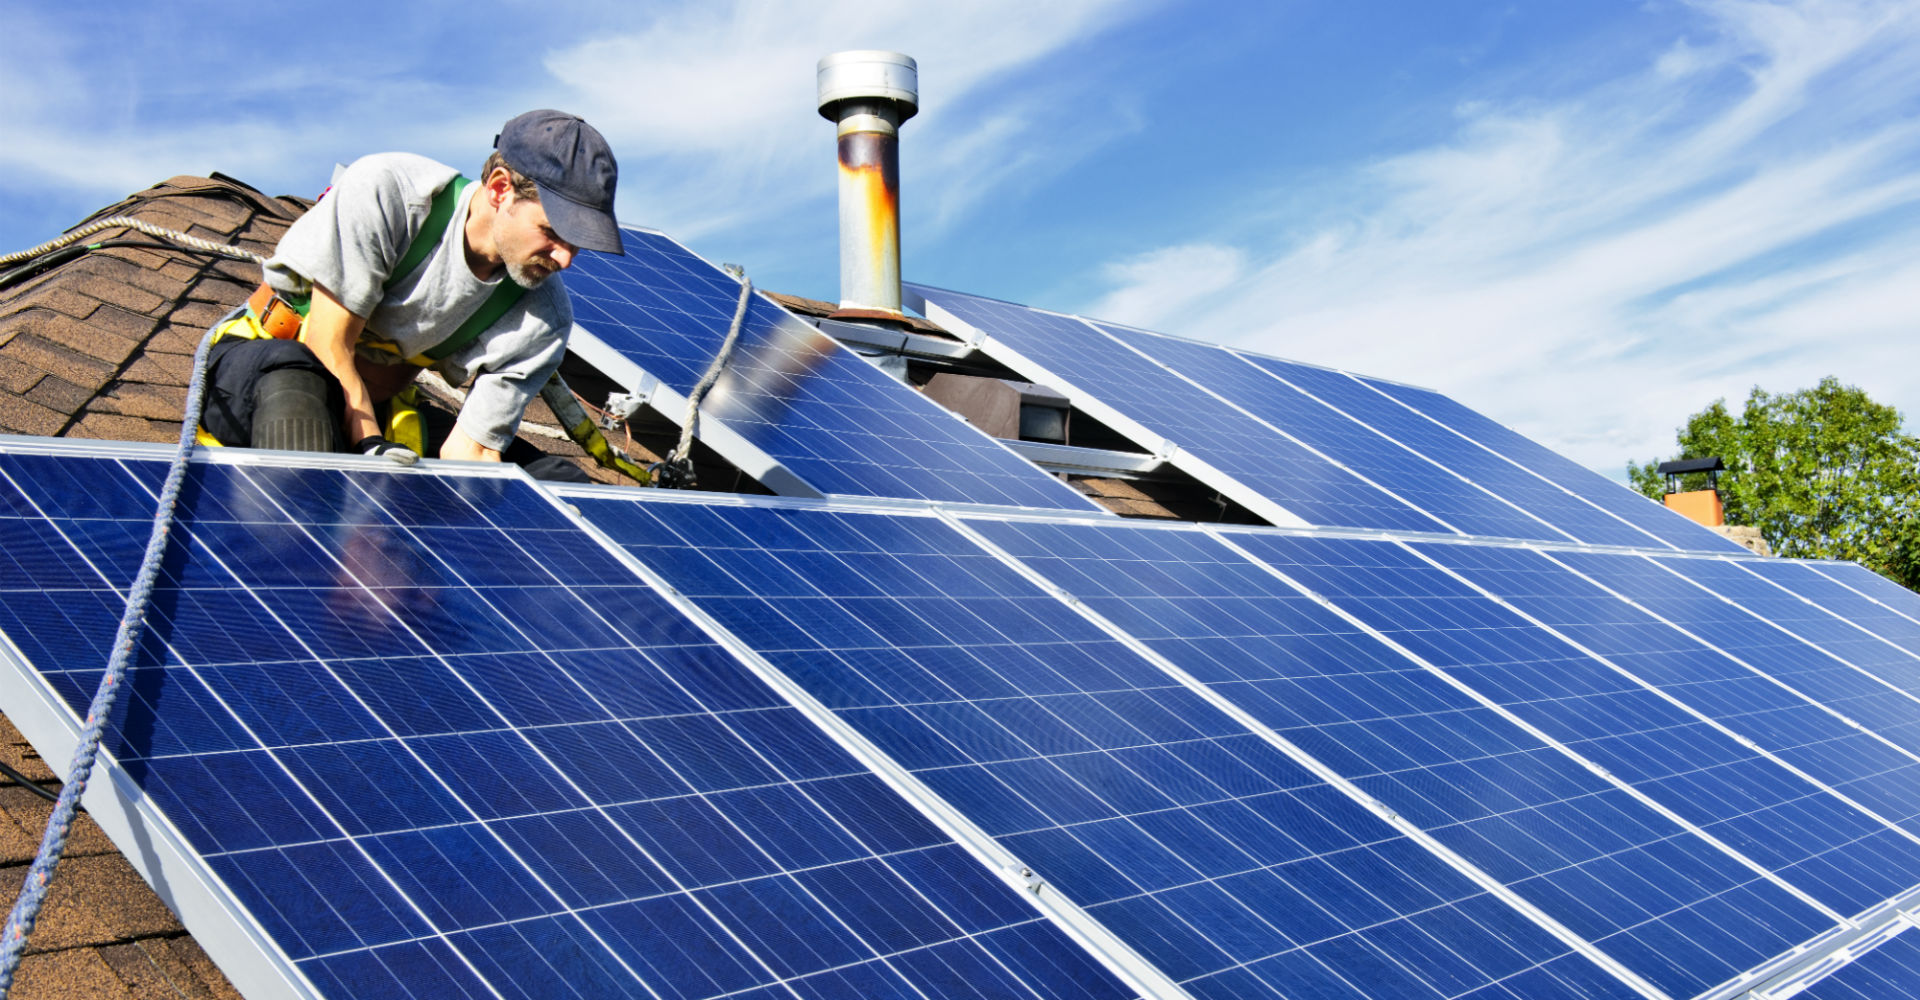 7 Questions to Ask Potential Solar Installation Companies Before Hiring.jpg